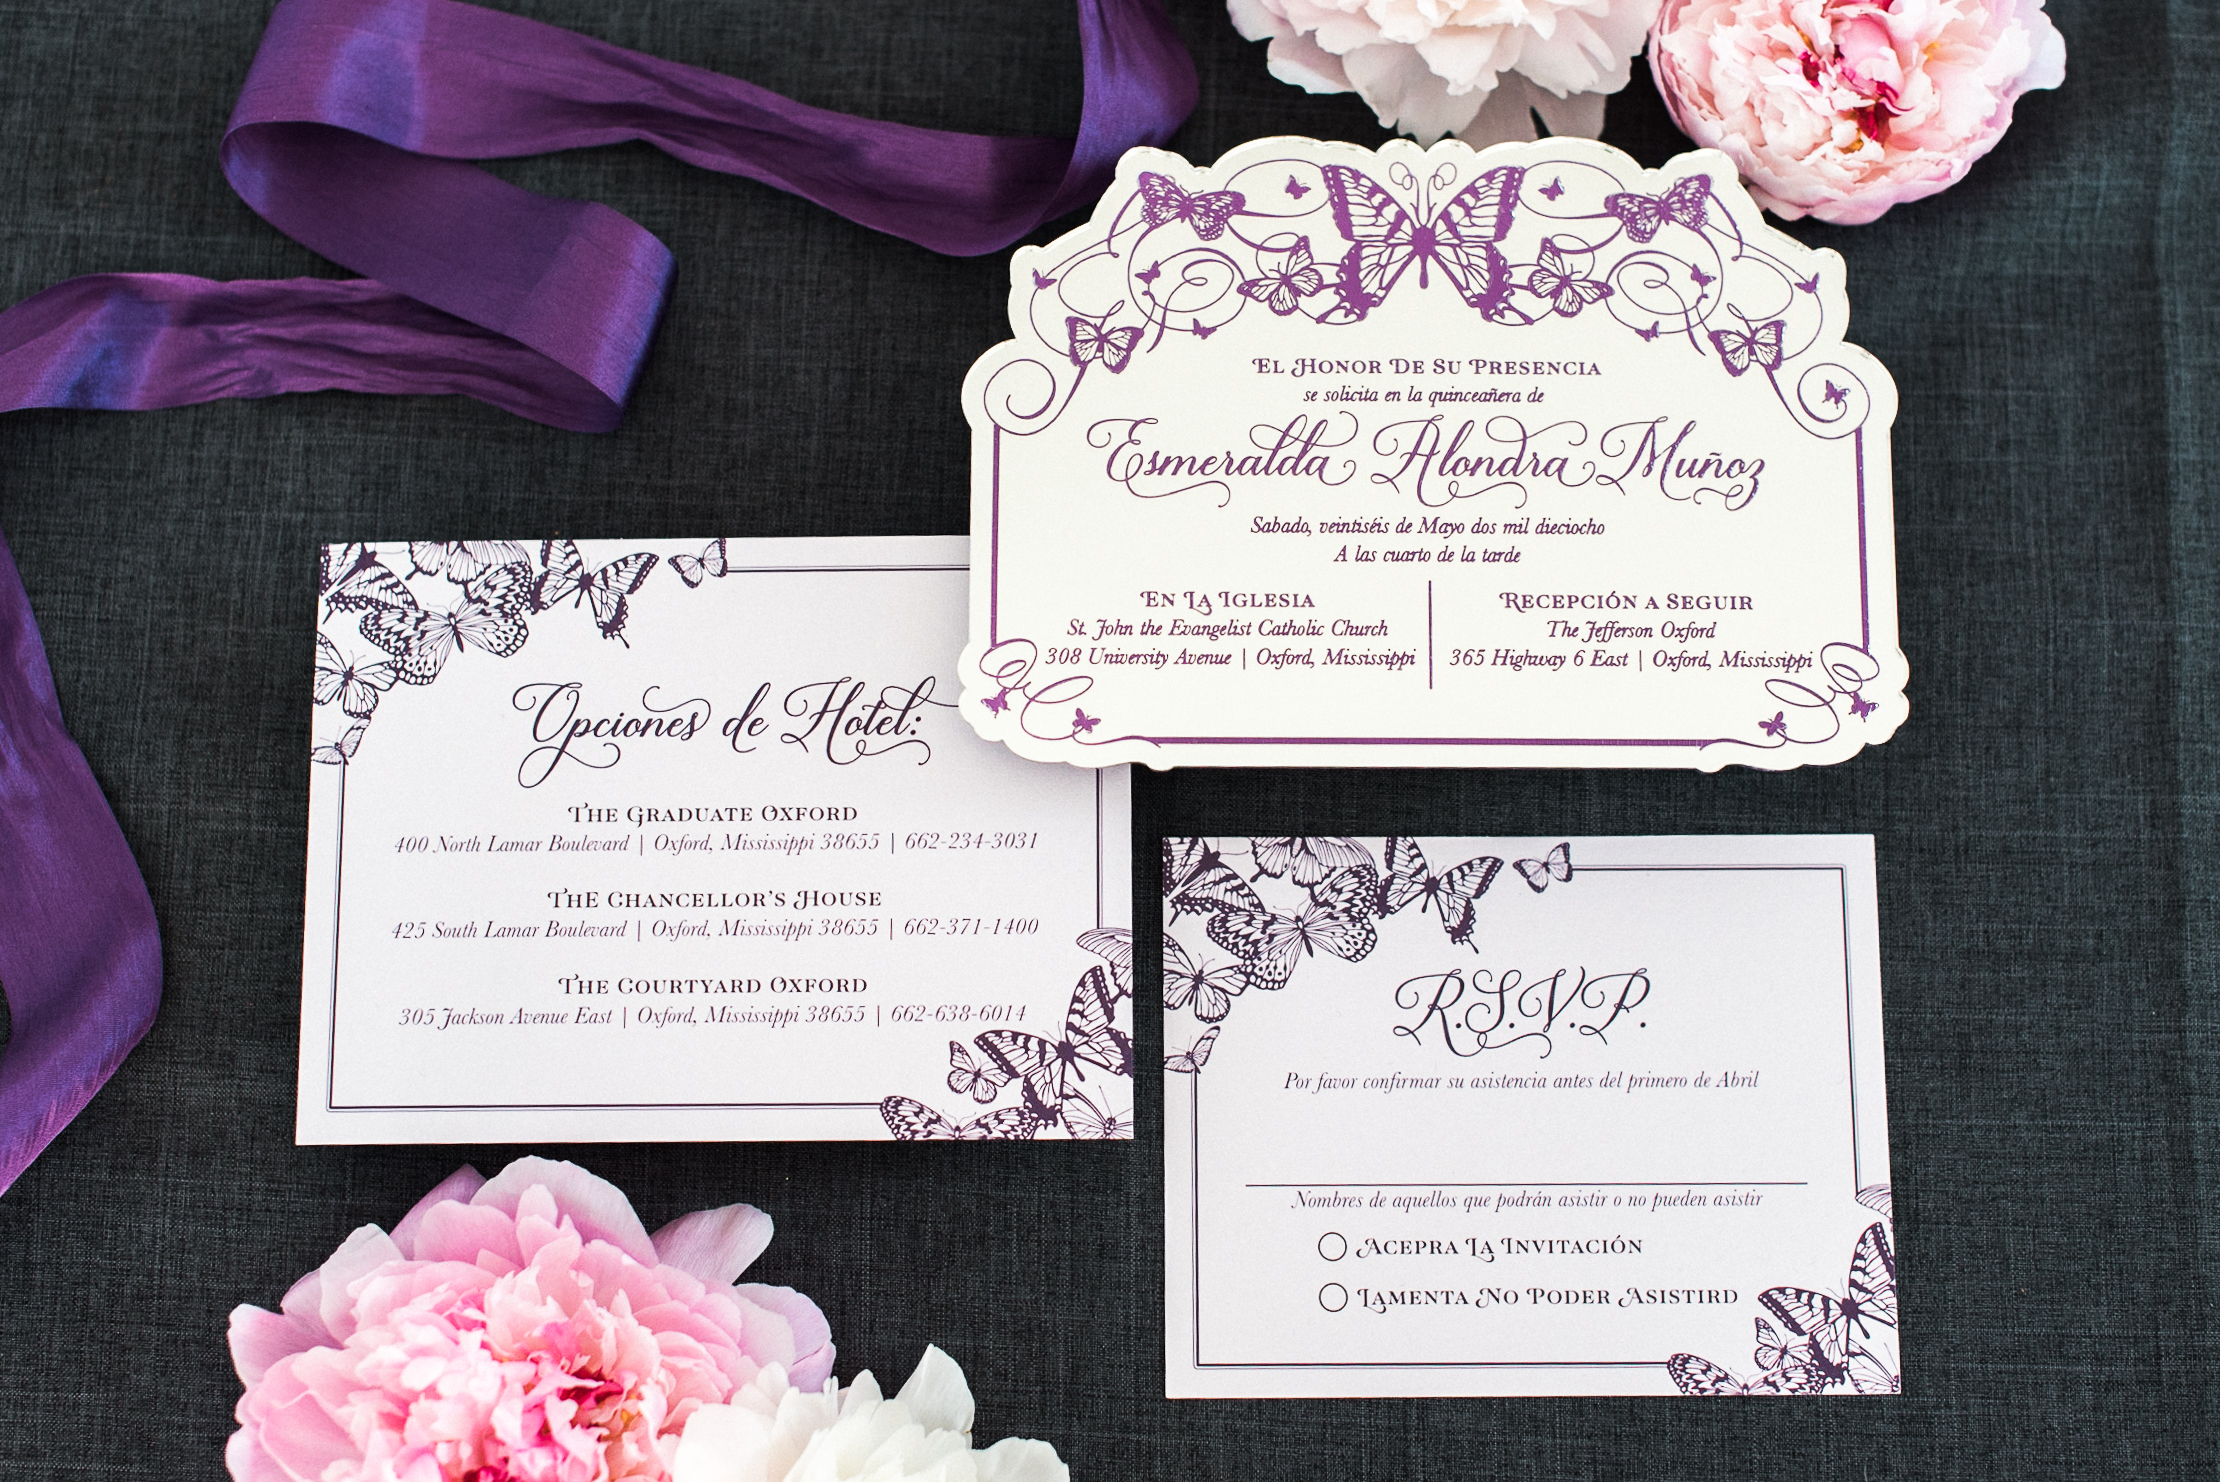 ENGRAVED MIRRORED ACRLIC BUTTERFLY INVITATION